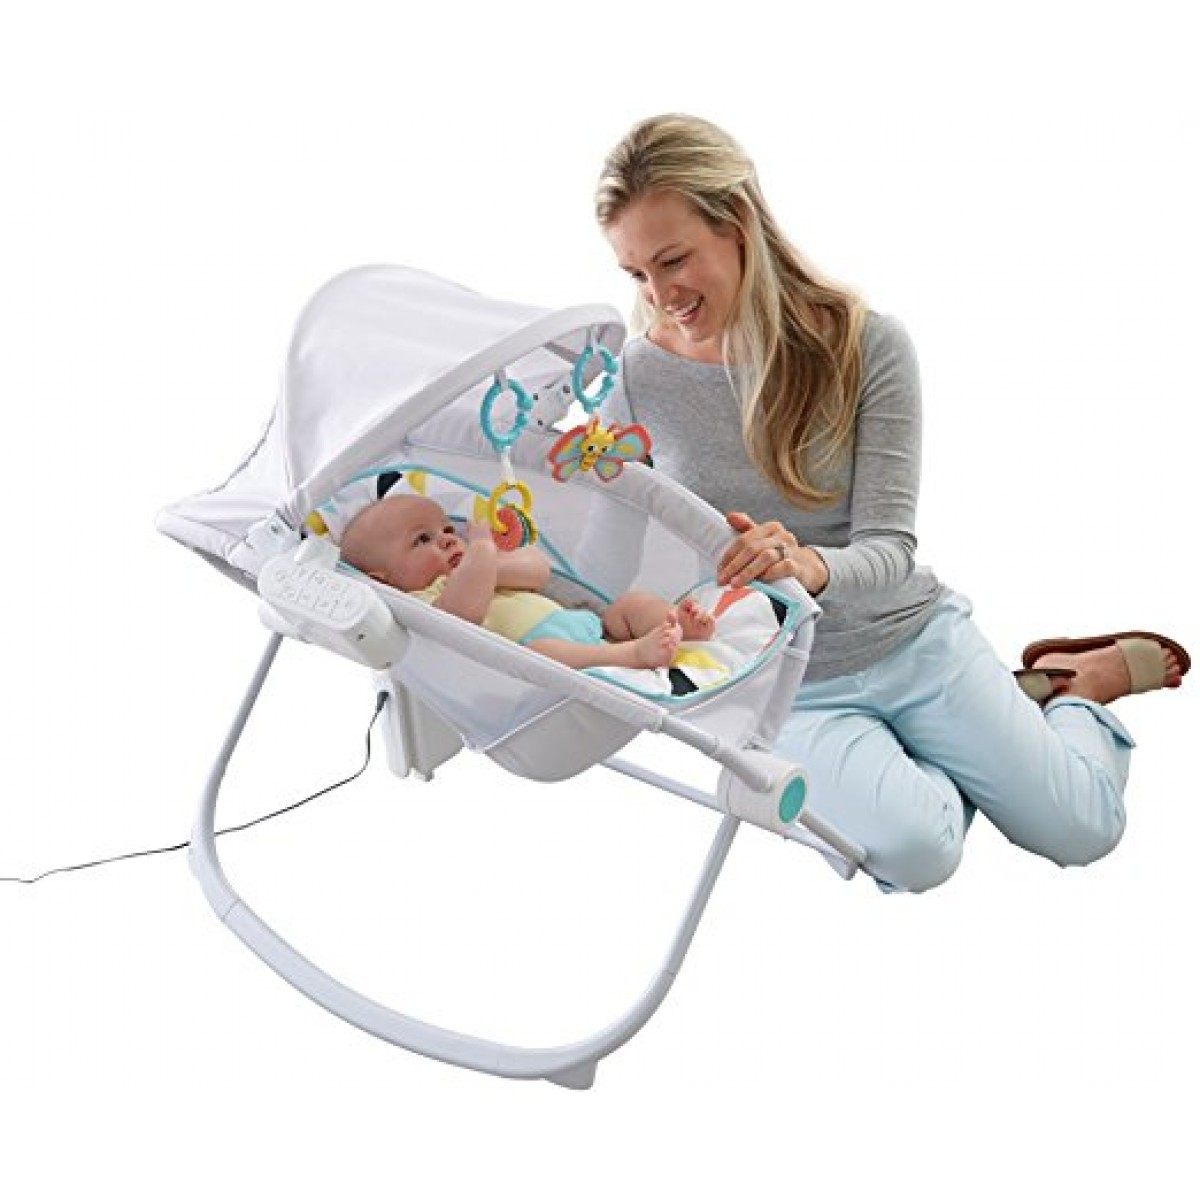 Fisher Price Premium Auto Rock N Play Sleeper With Smart Connect Swings